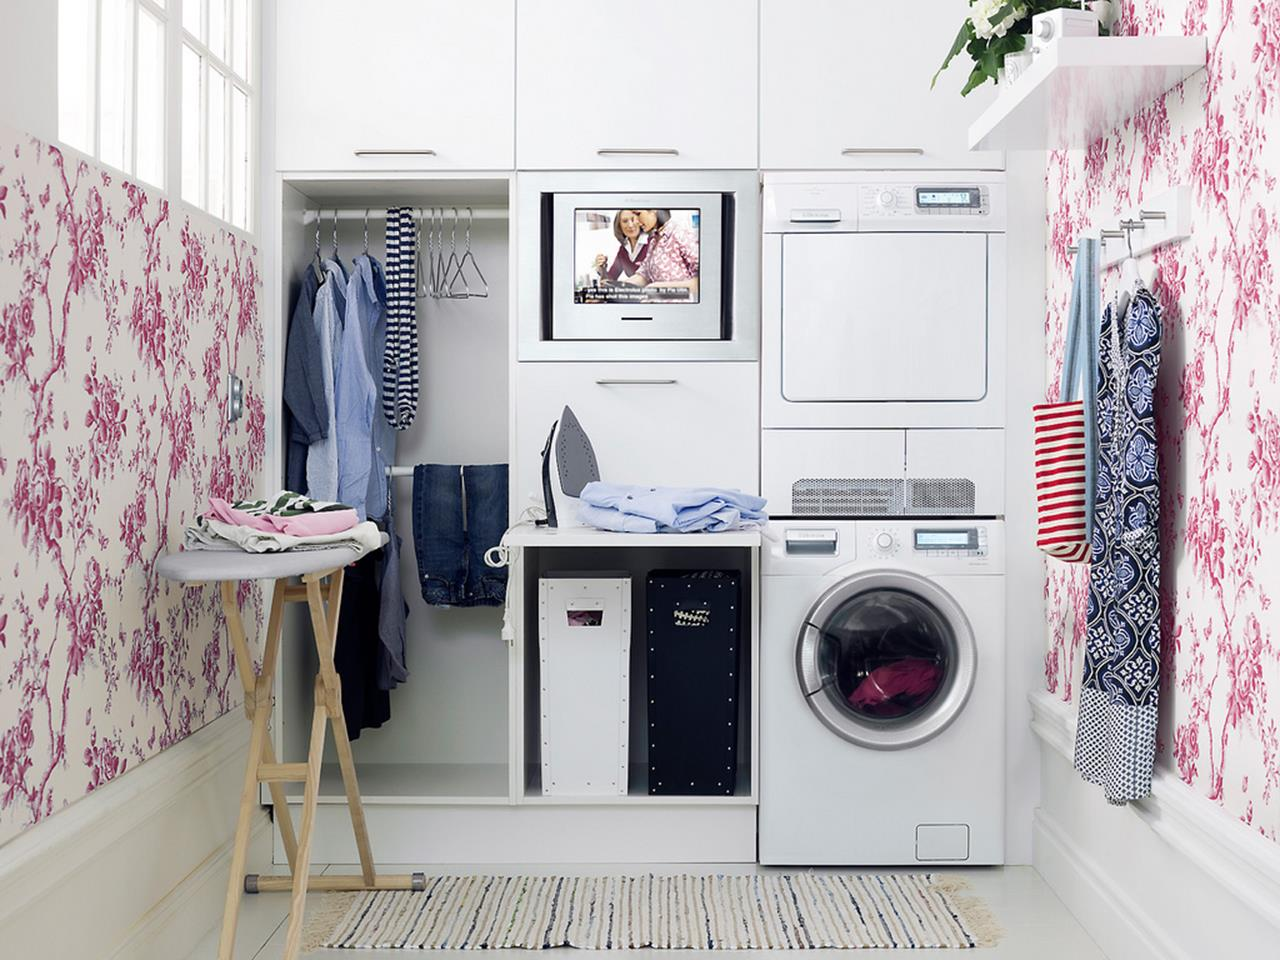 Laundry Room Accessories Decorations Ideas 26